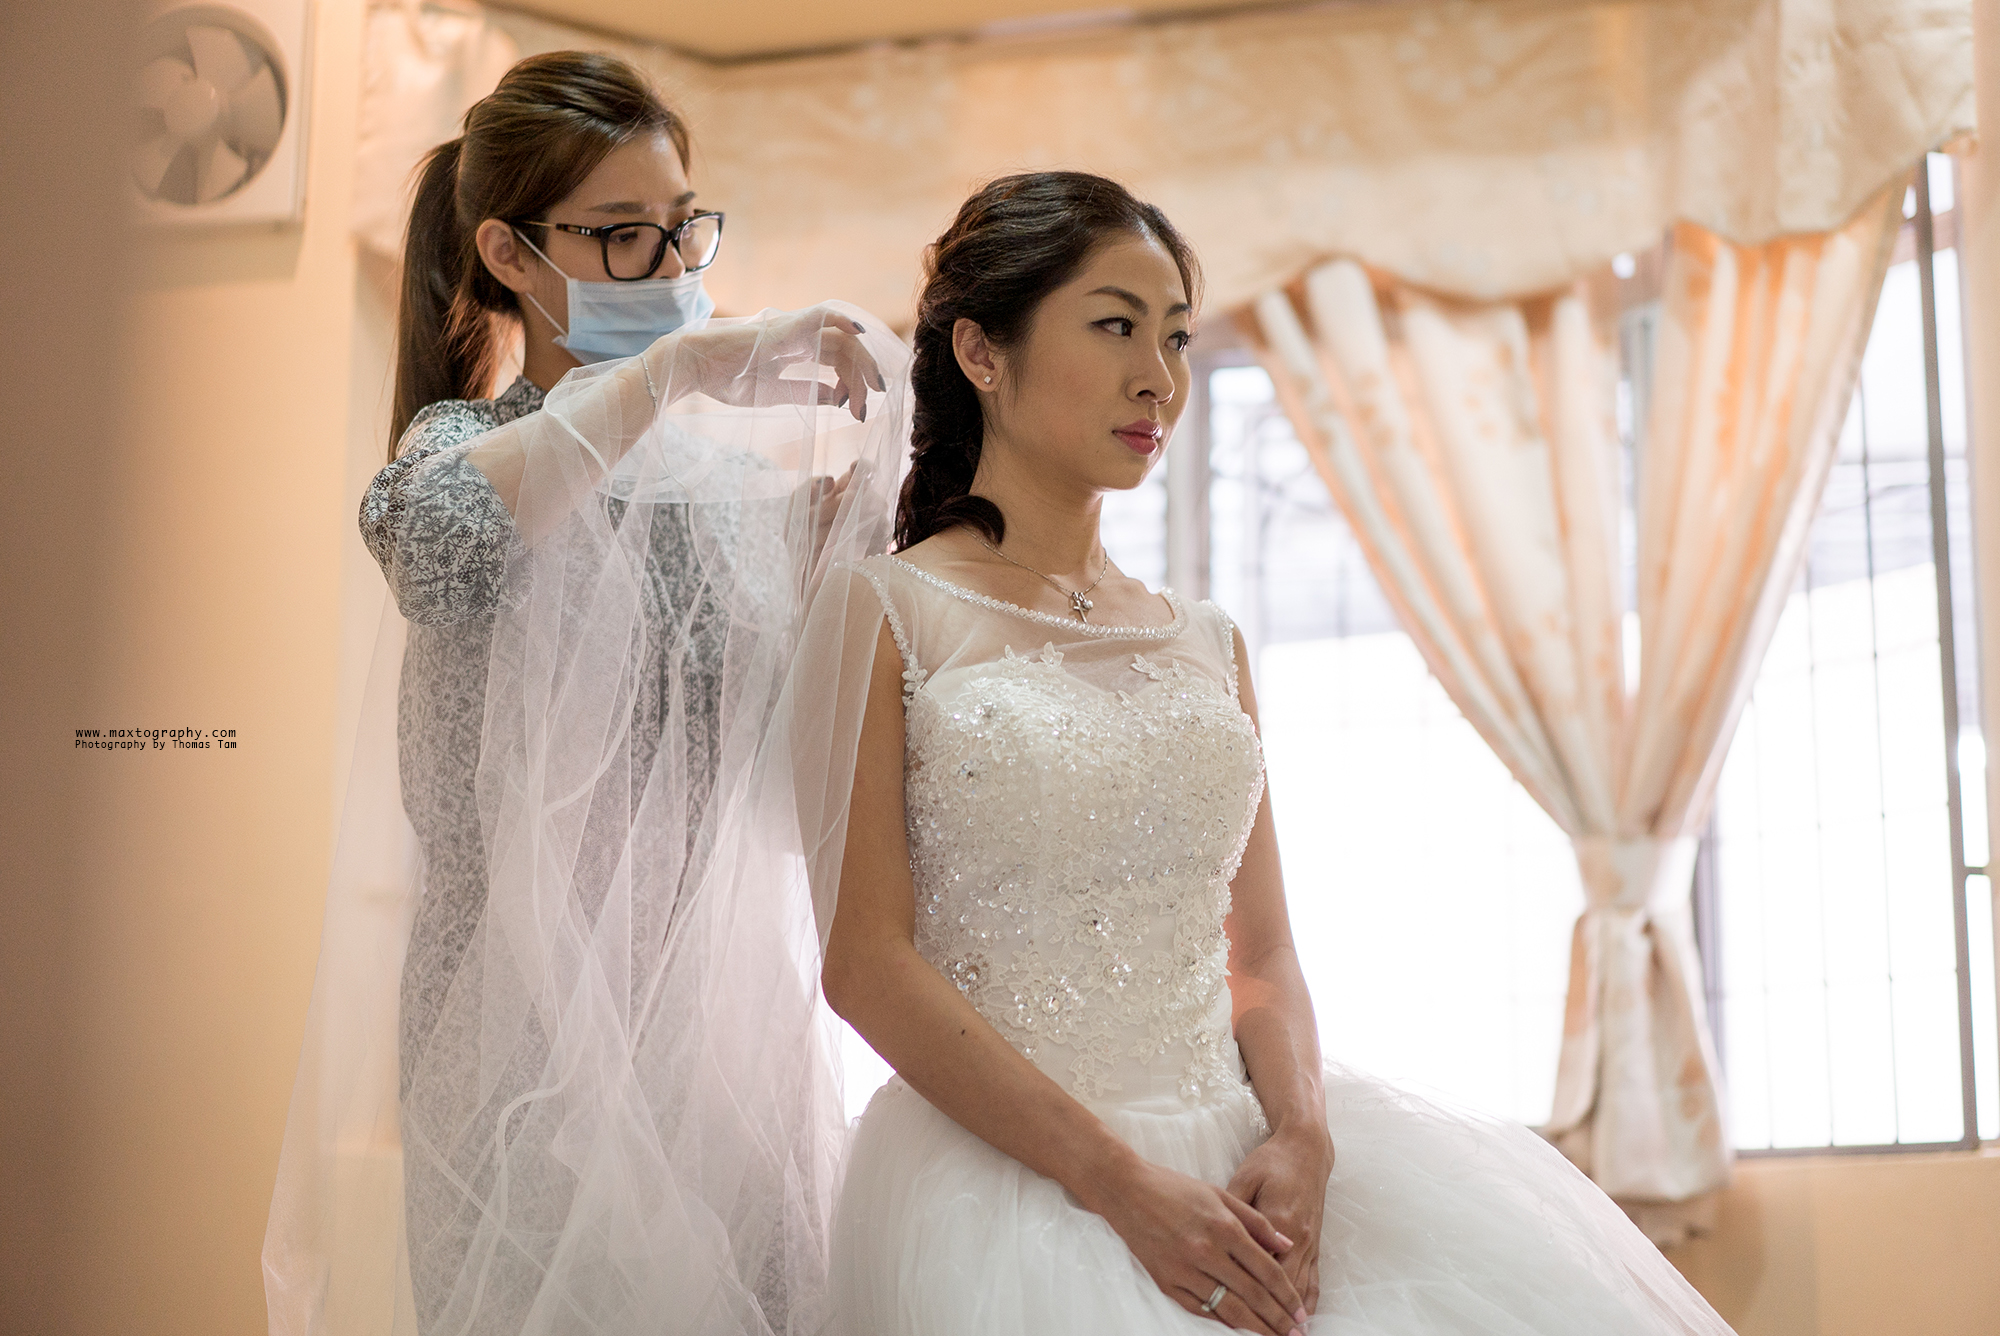 make up artist tiding brides veil